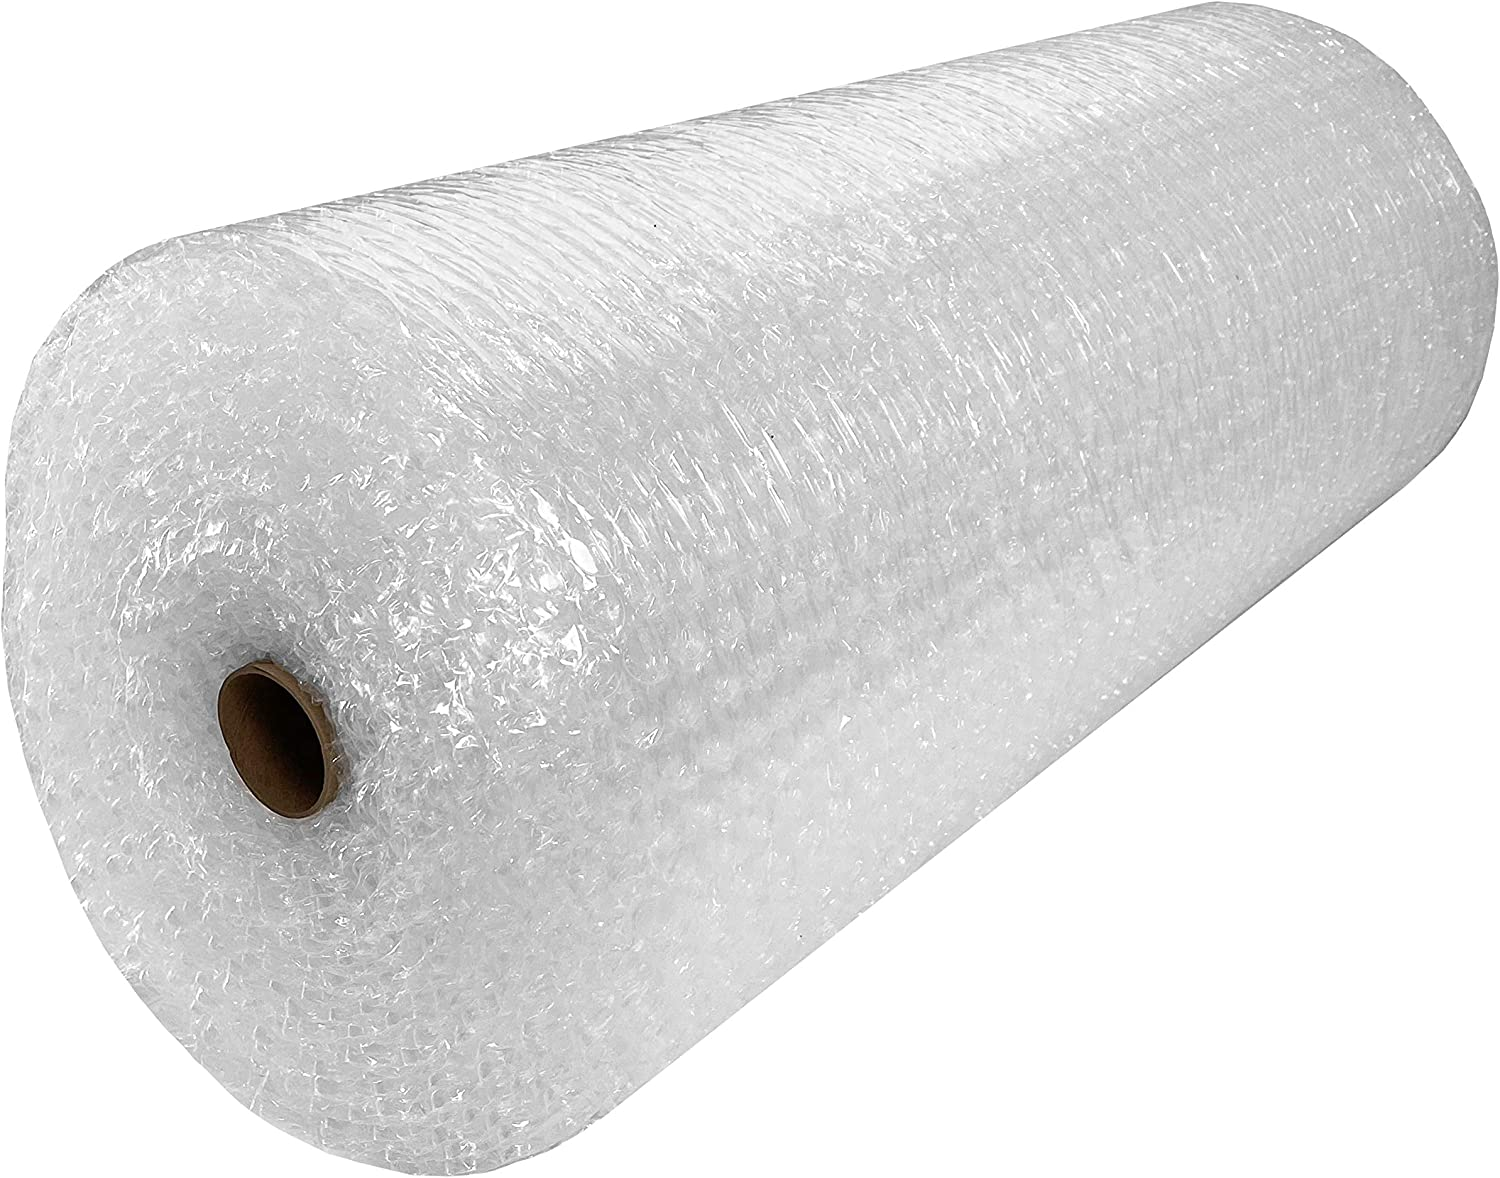 Challenge the lowest price of Japan uBoxes Medium Bubble Cushioning Roll Milwaukee Mall 48